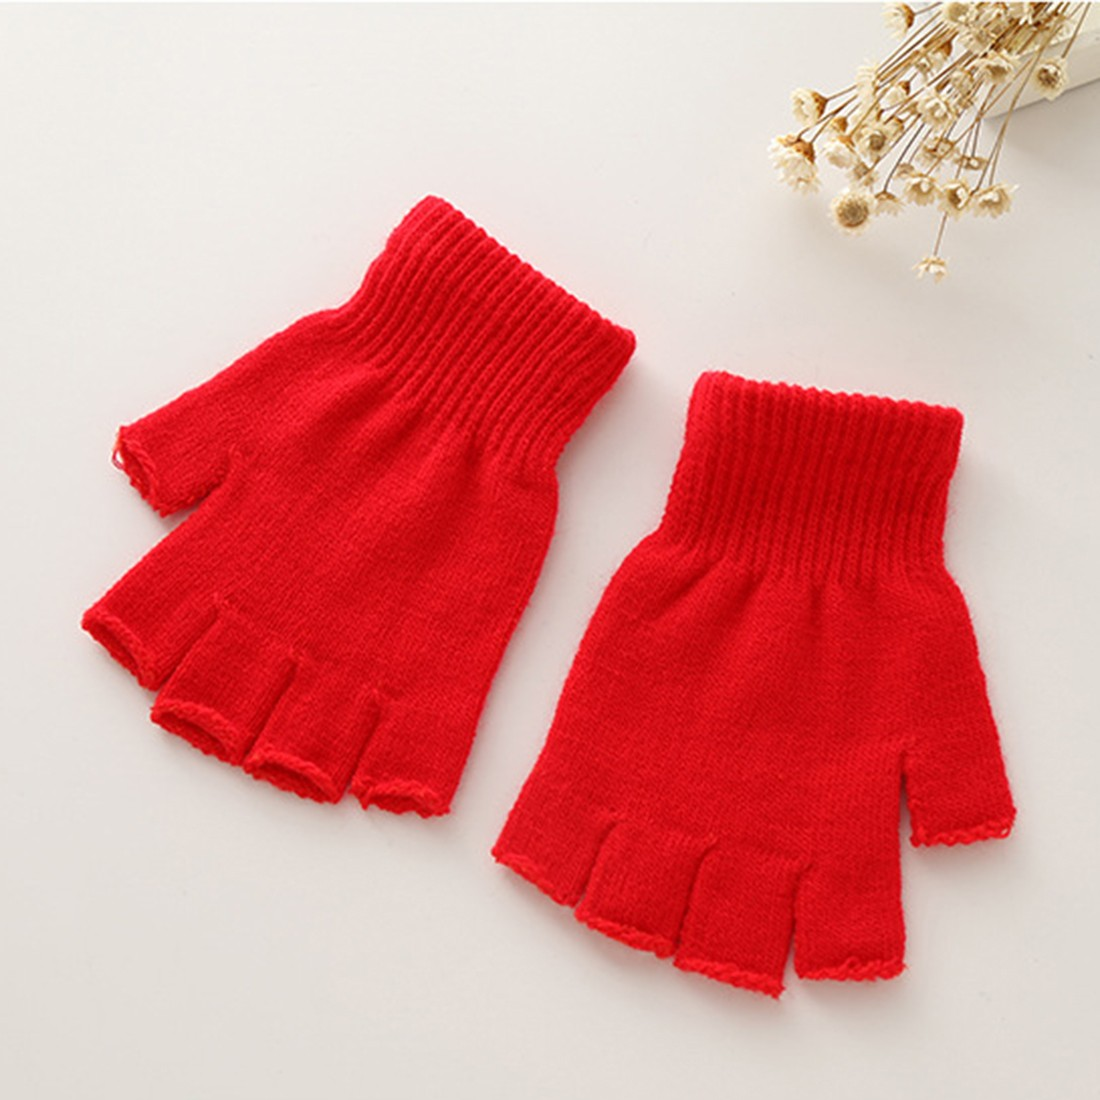 Charming 5 Colors Knitted Stretch Half Finger Fingerless Gloves for Winter Women Soft Warm Elastic Mittens Accessories